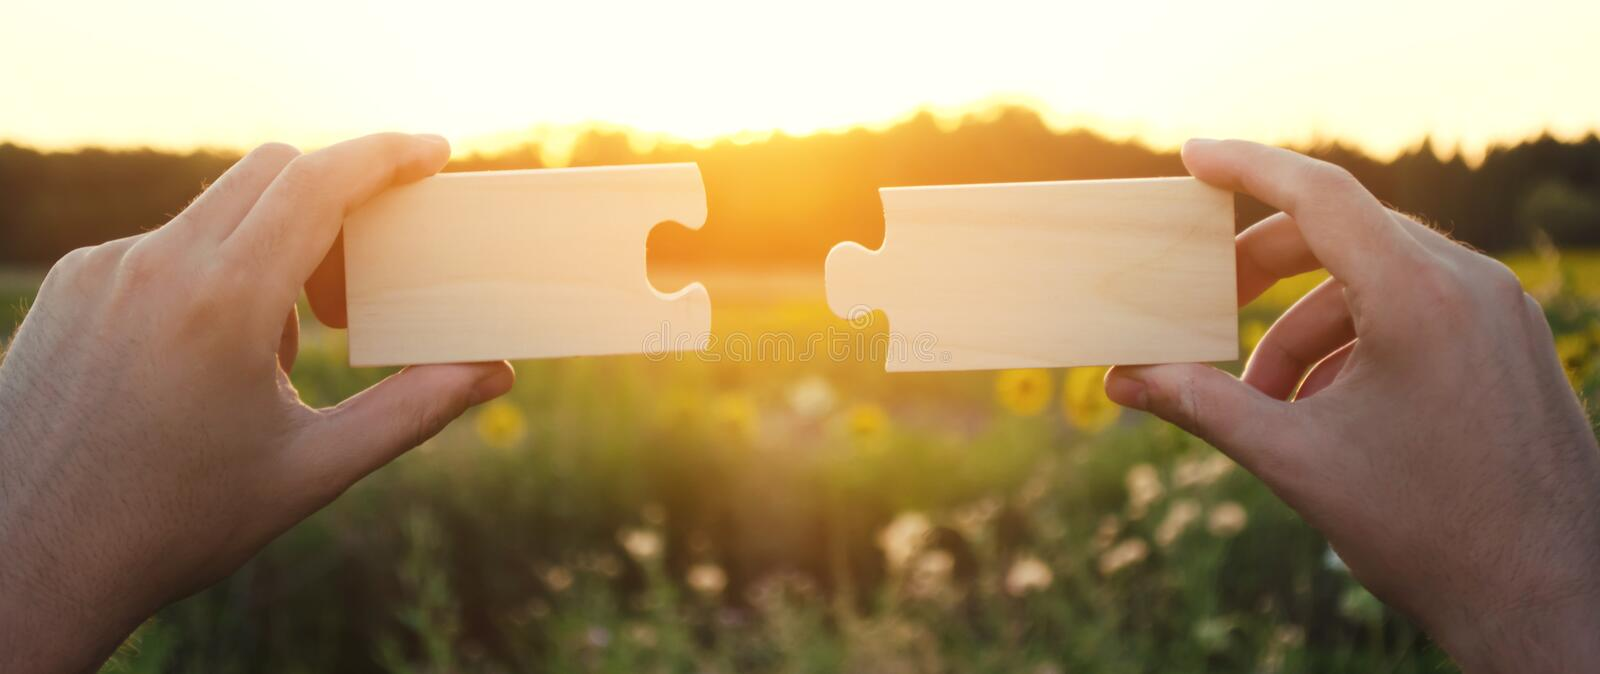 A man collects collects wooden puzzles at sunset. Concept of success, business solutions. Strategy and goal achievement. Making. The right decision. Connection royalty free stock photos